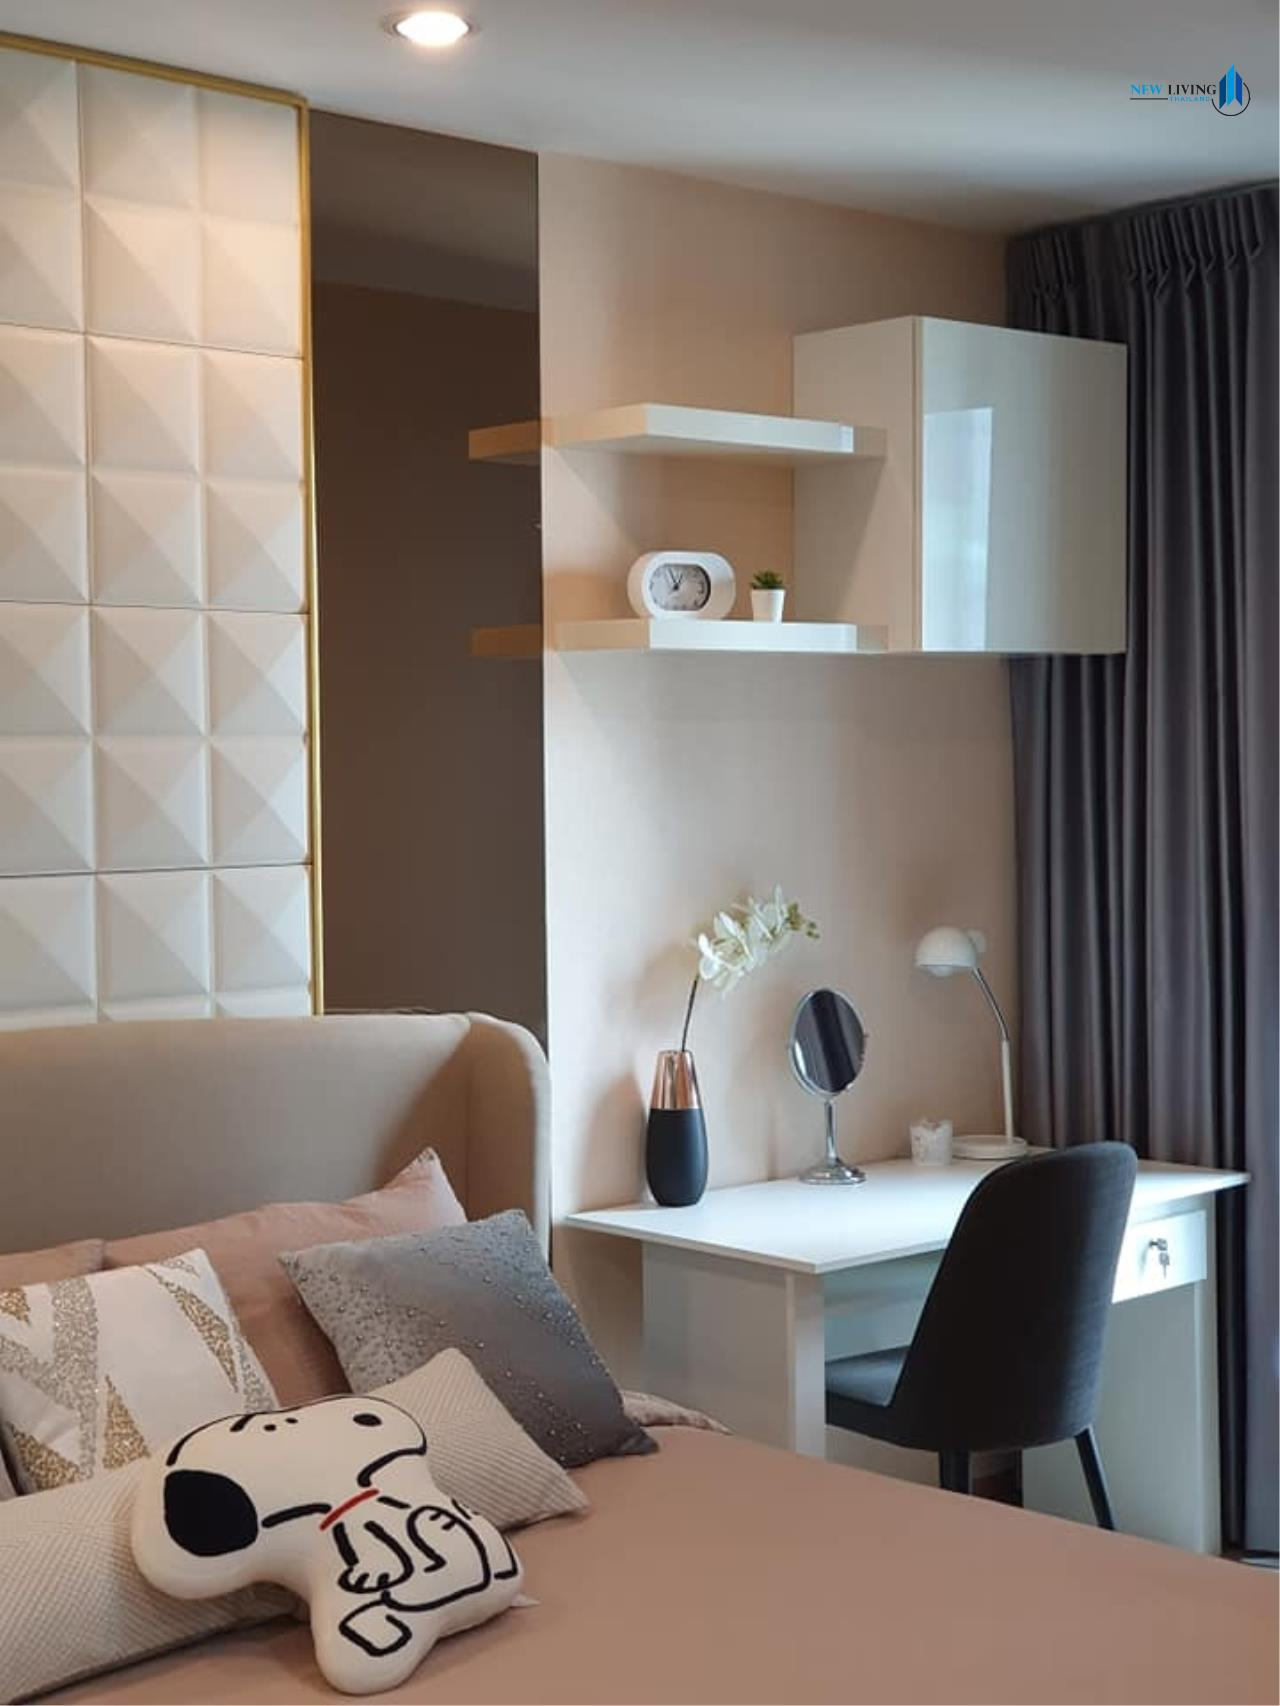 New Living Thailand Agency's +++ Urgent rent !! +++ Ideo Q Chula Samyan, fully furnished 1 bedroom , 33 sq.m.,+++ 2